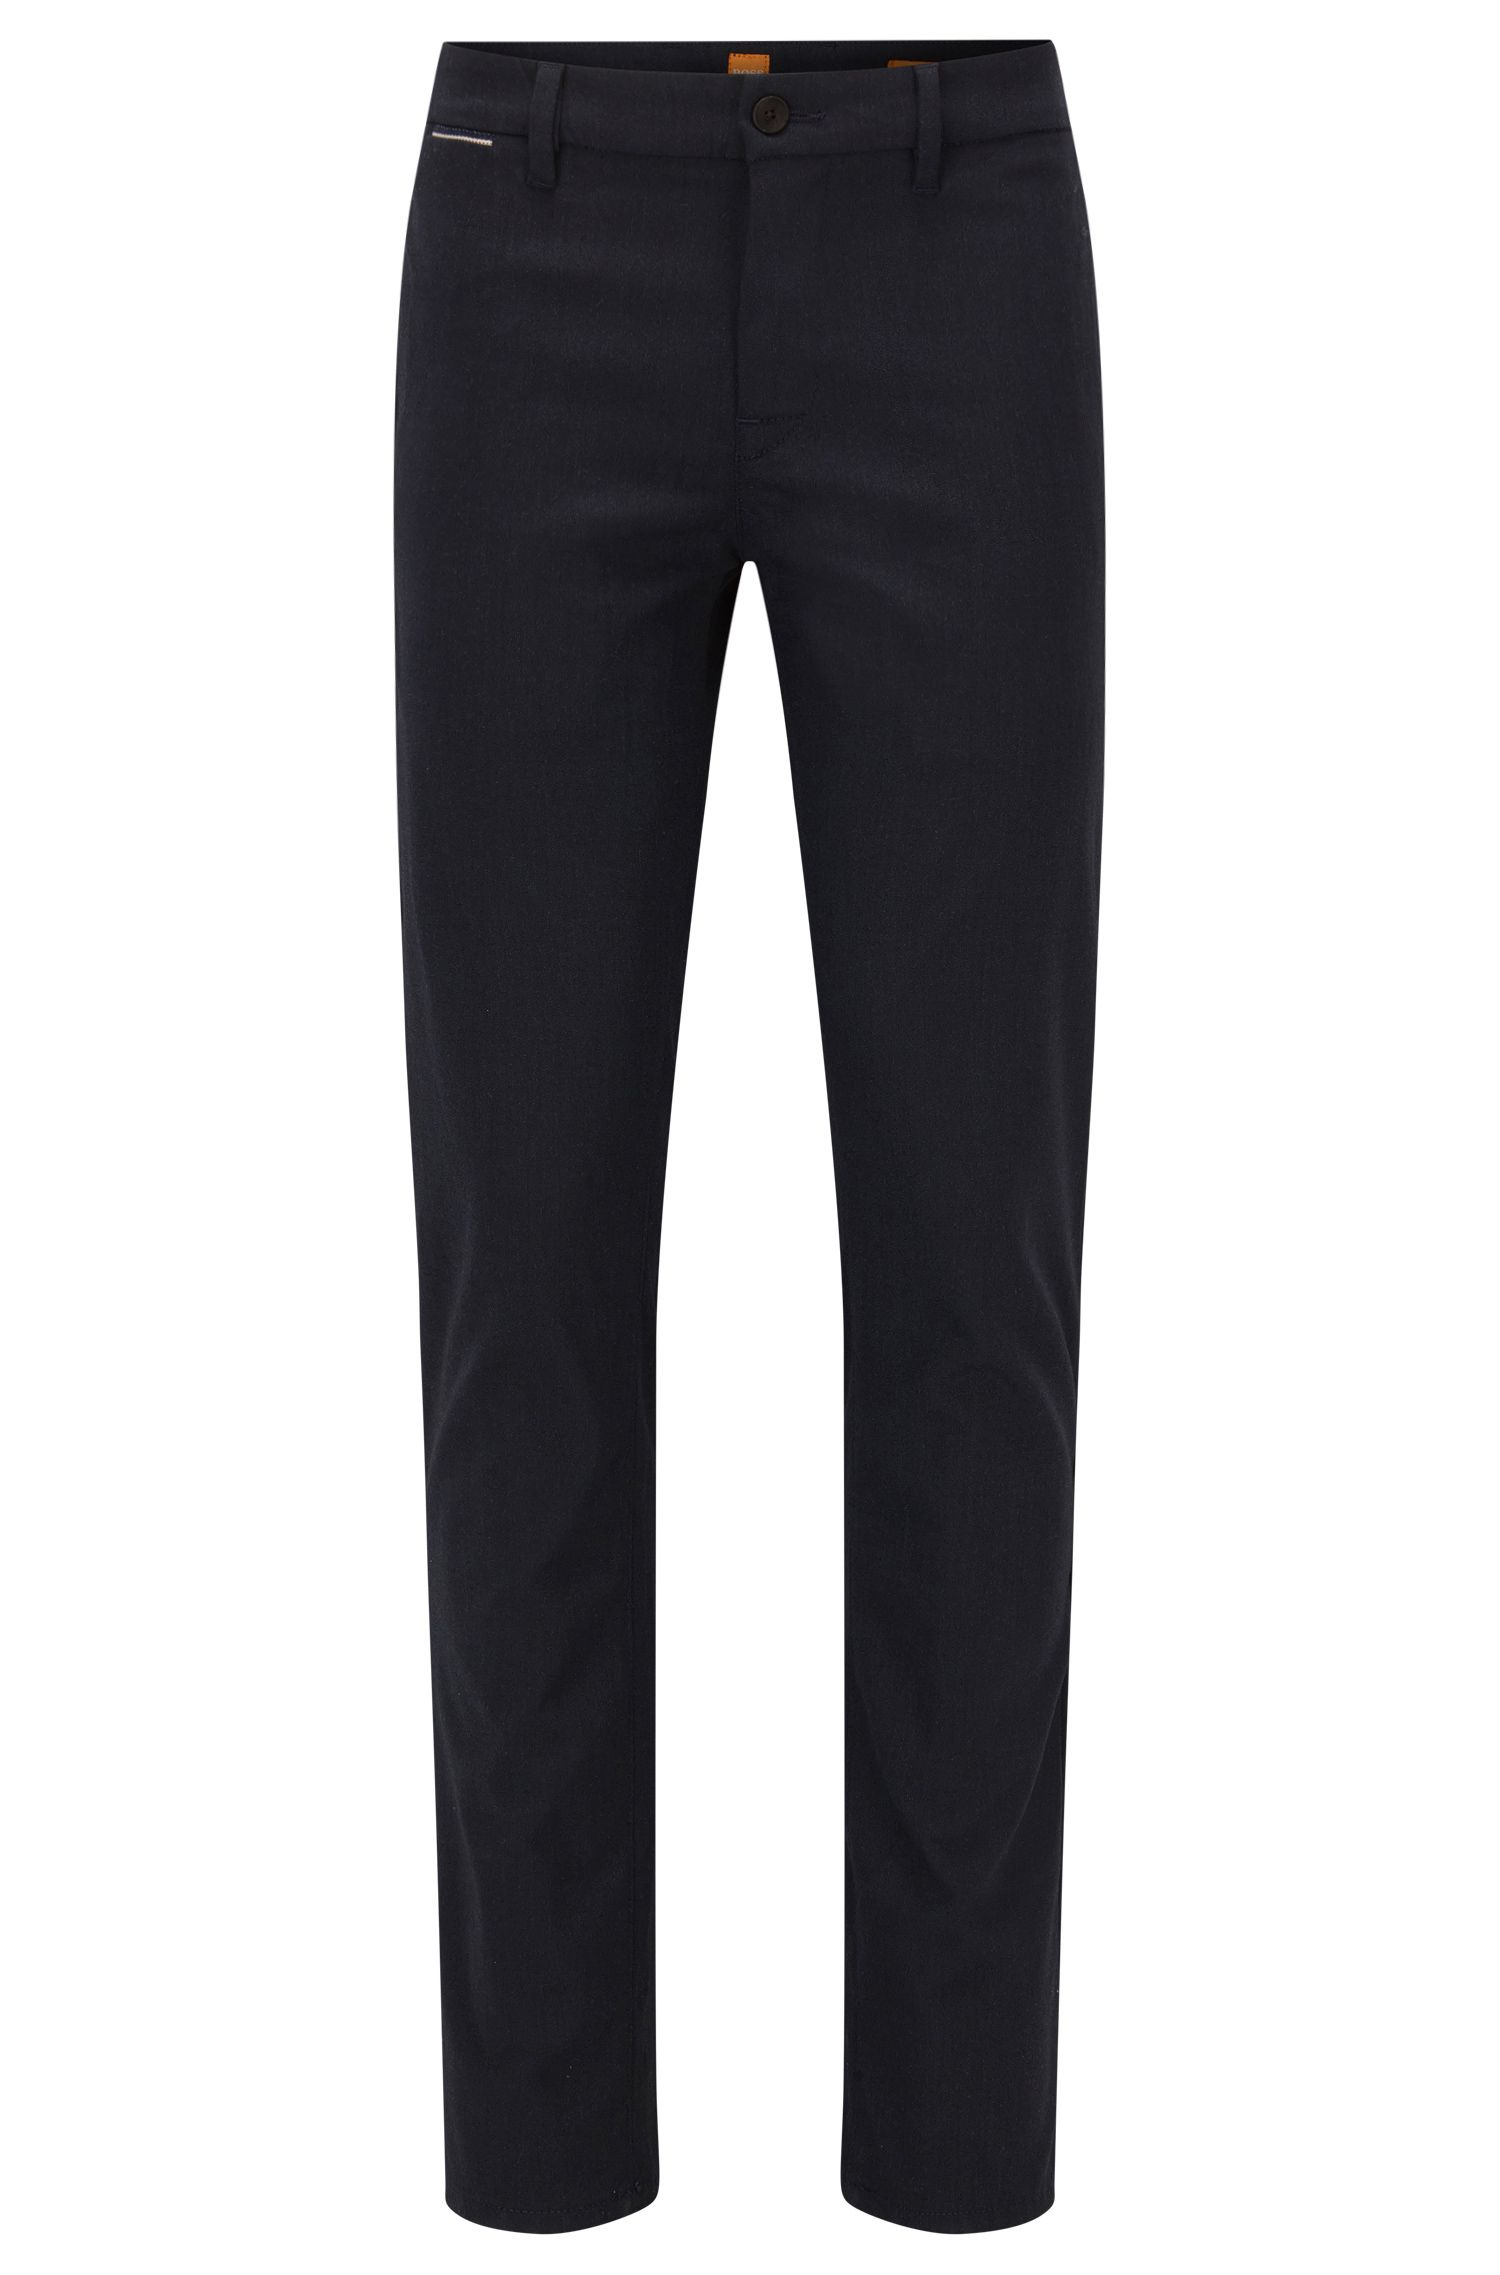 Pantalon Slim Fit en tissu Oxford chiné